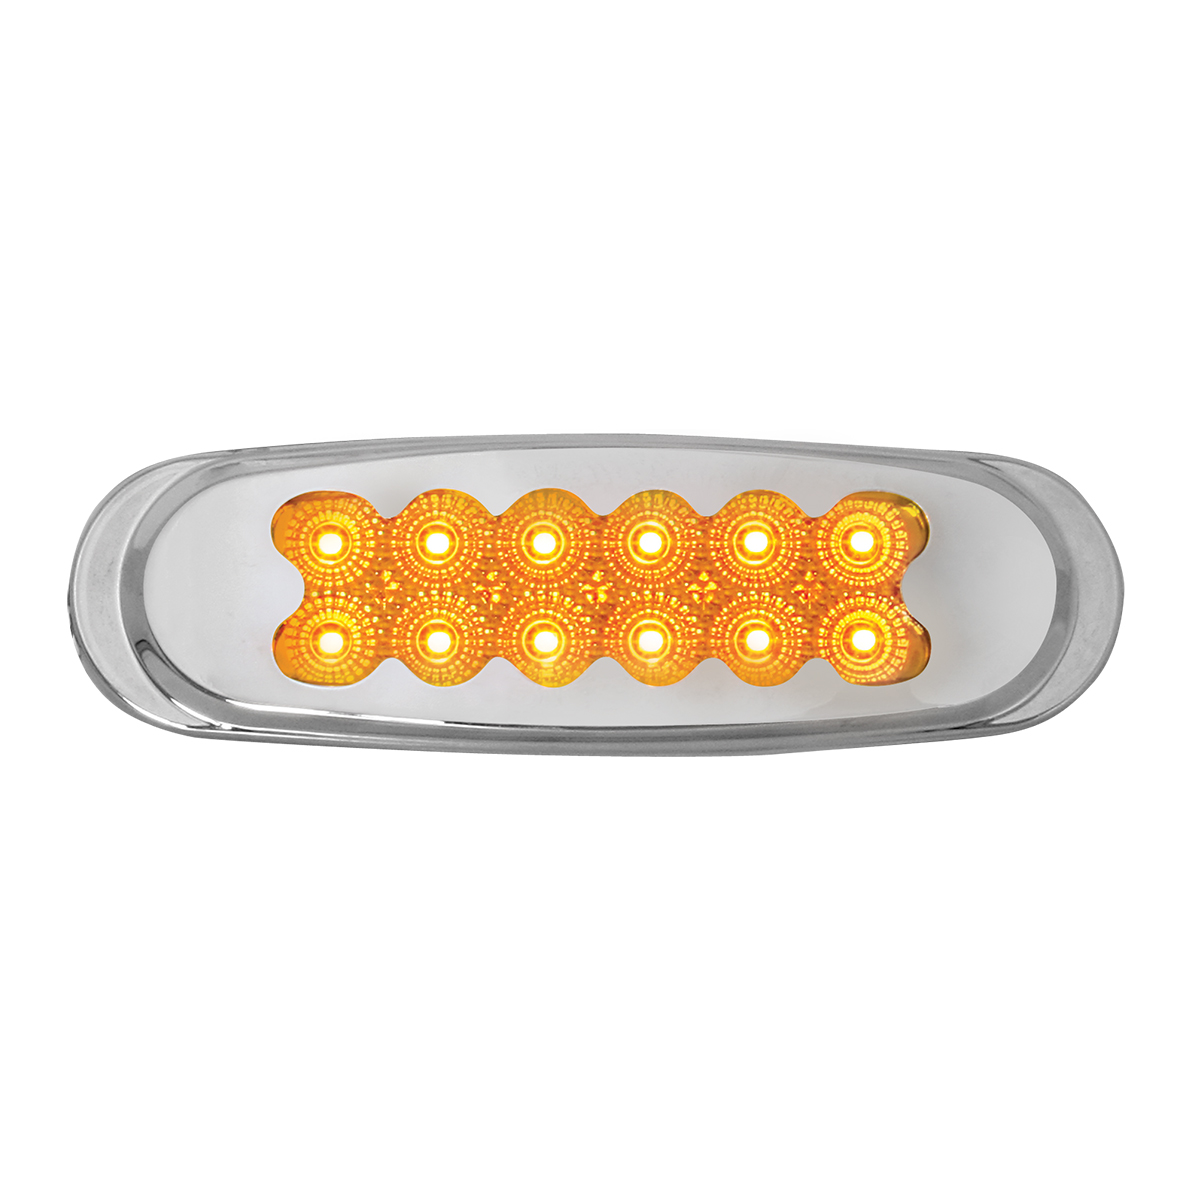 76700 Ultra Thin Spyder LED Marker Light w/ Chrome Plastic Matrix Bezel